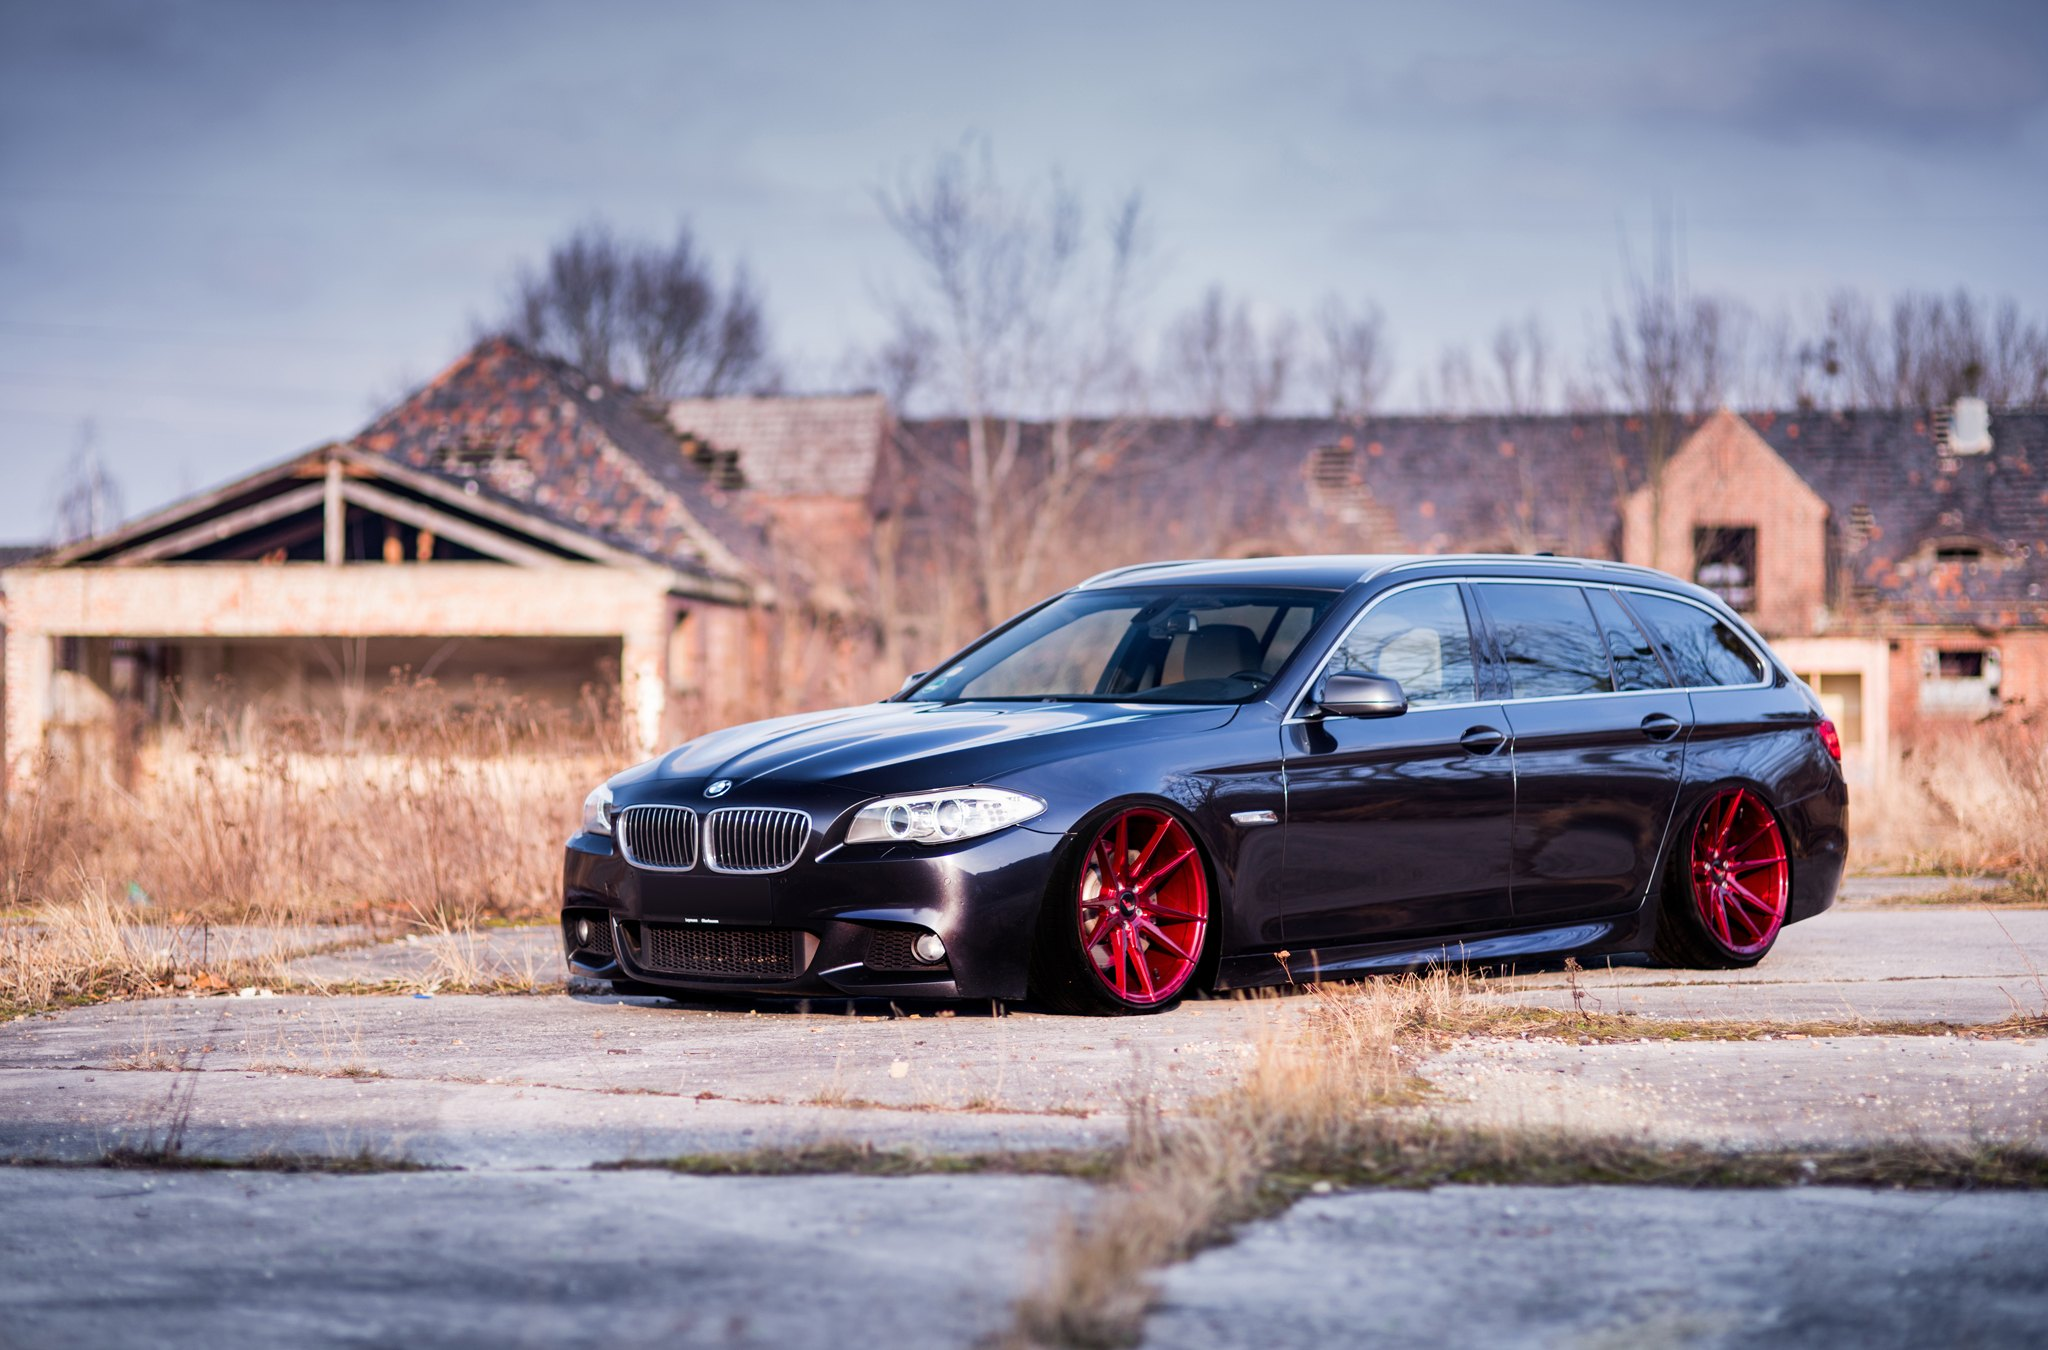 Jdm Custom Program Detected On Black Bmw 5 Series Carid Com Gallery